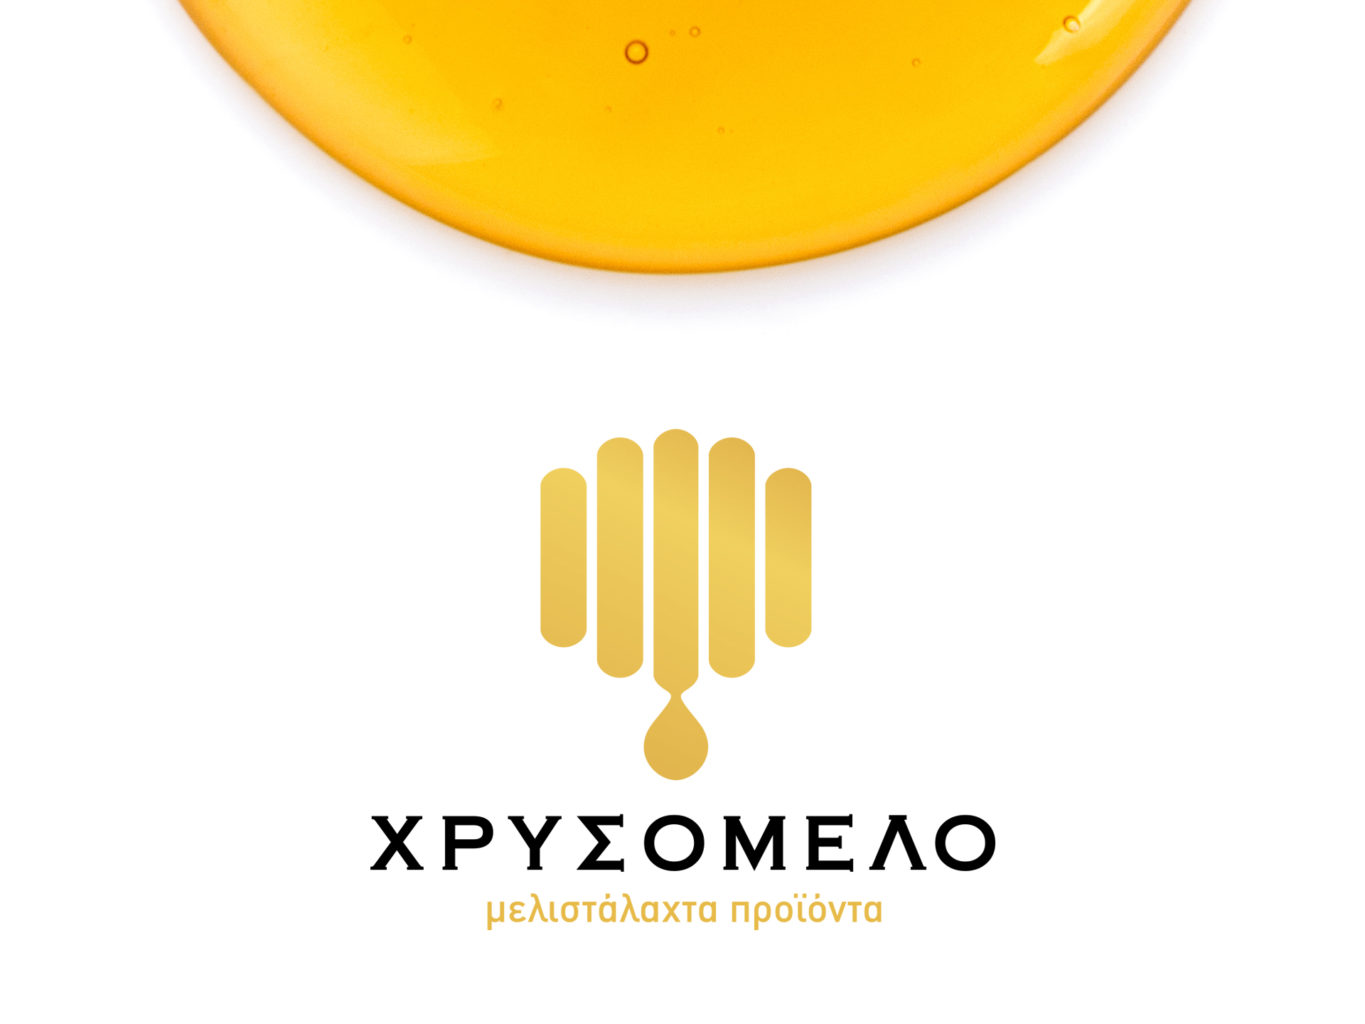 Chrisomelo honey logo design